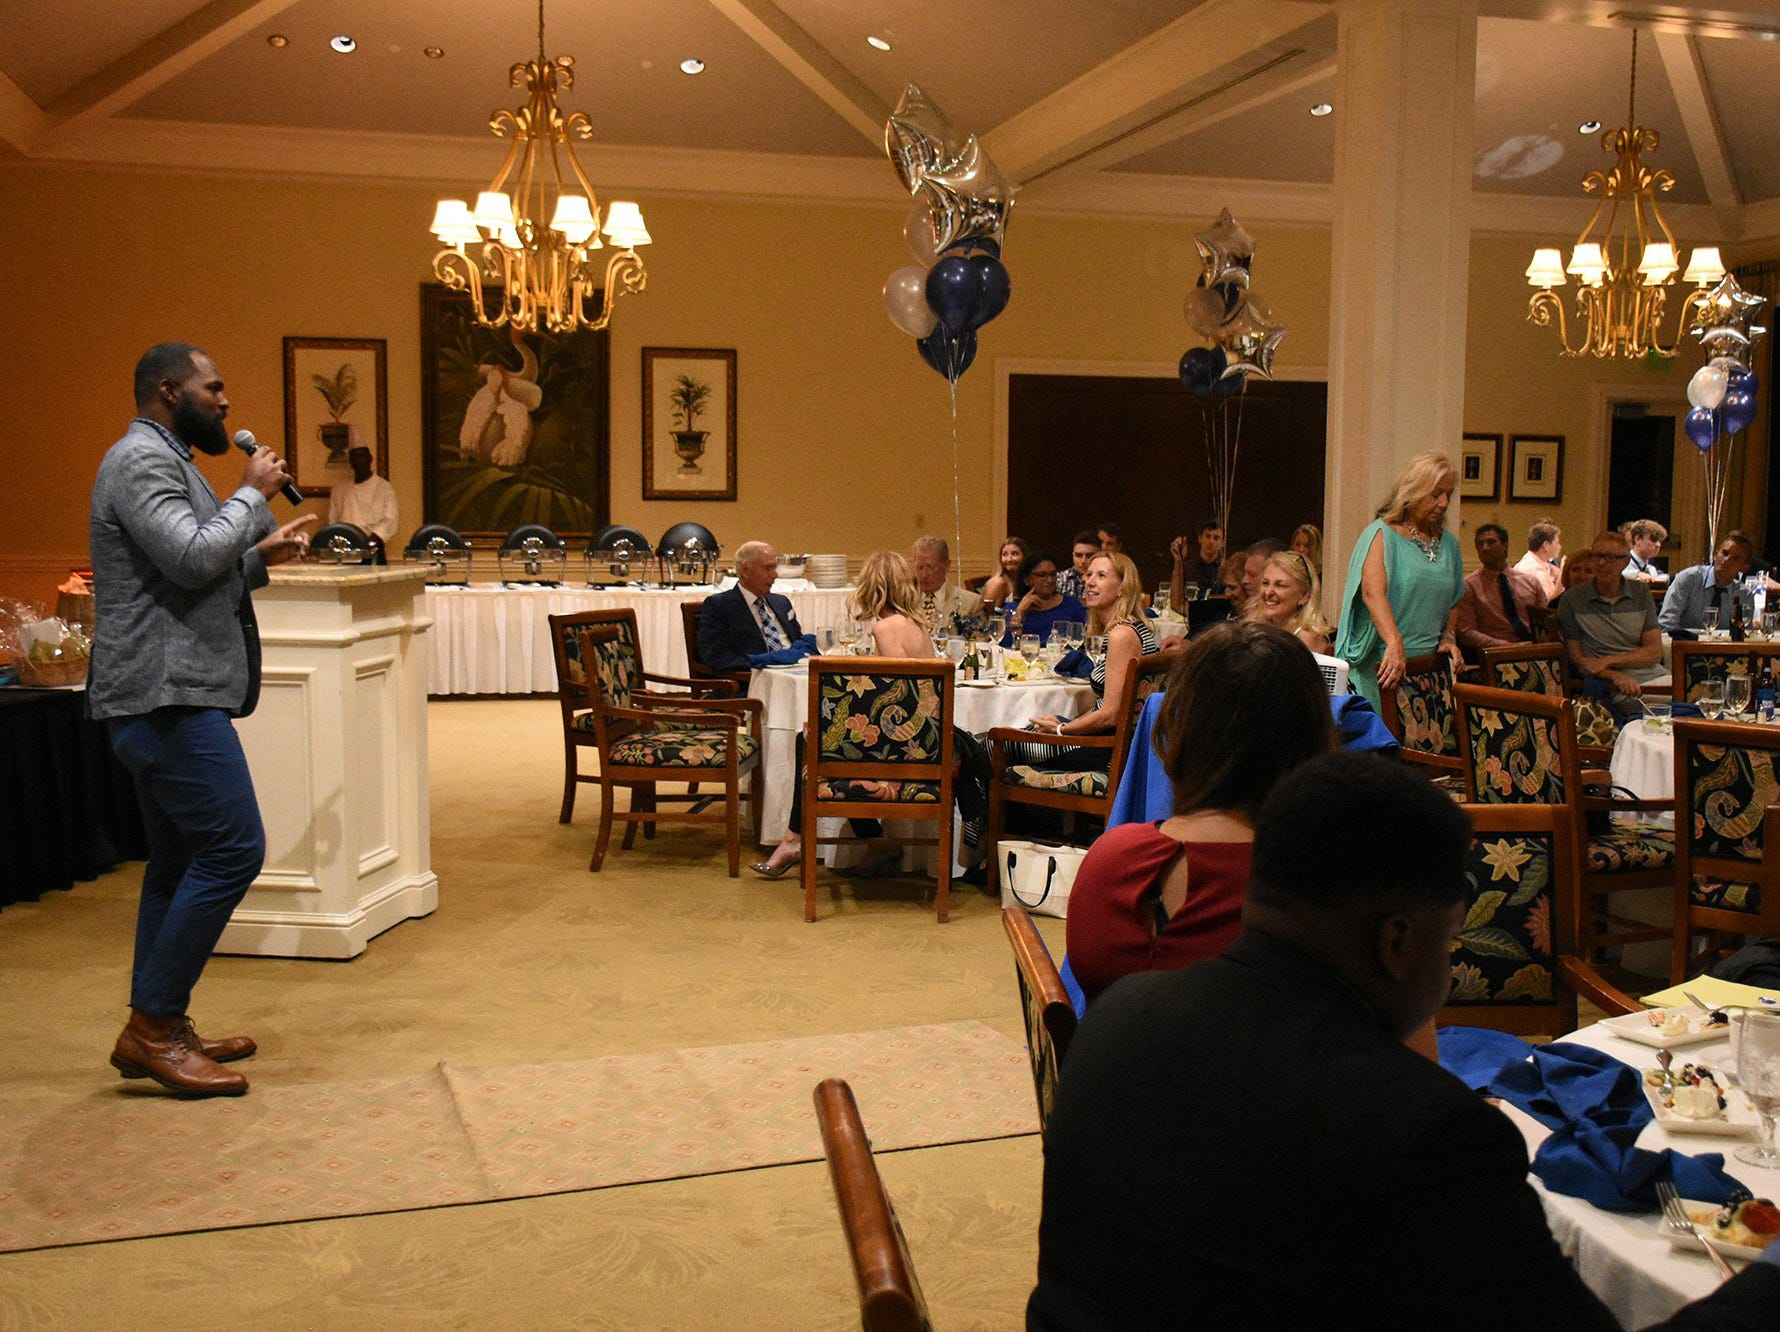 Guest speaker Andre Fluellen, a former NFL player, gives the keynote address. Marco Island Academy held 'Cheers for Champions,' a benefit dinner to raise funds for the school's athletic programs, Saturday evening at Hideaway Beach Club.